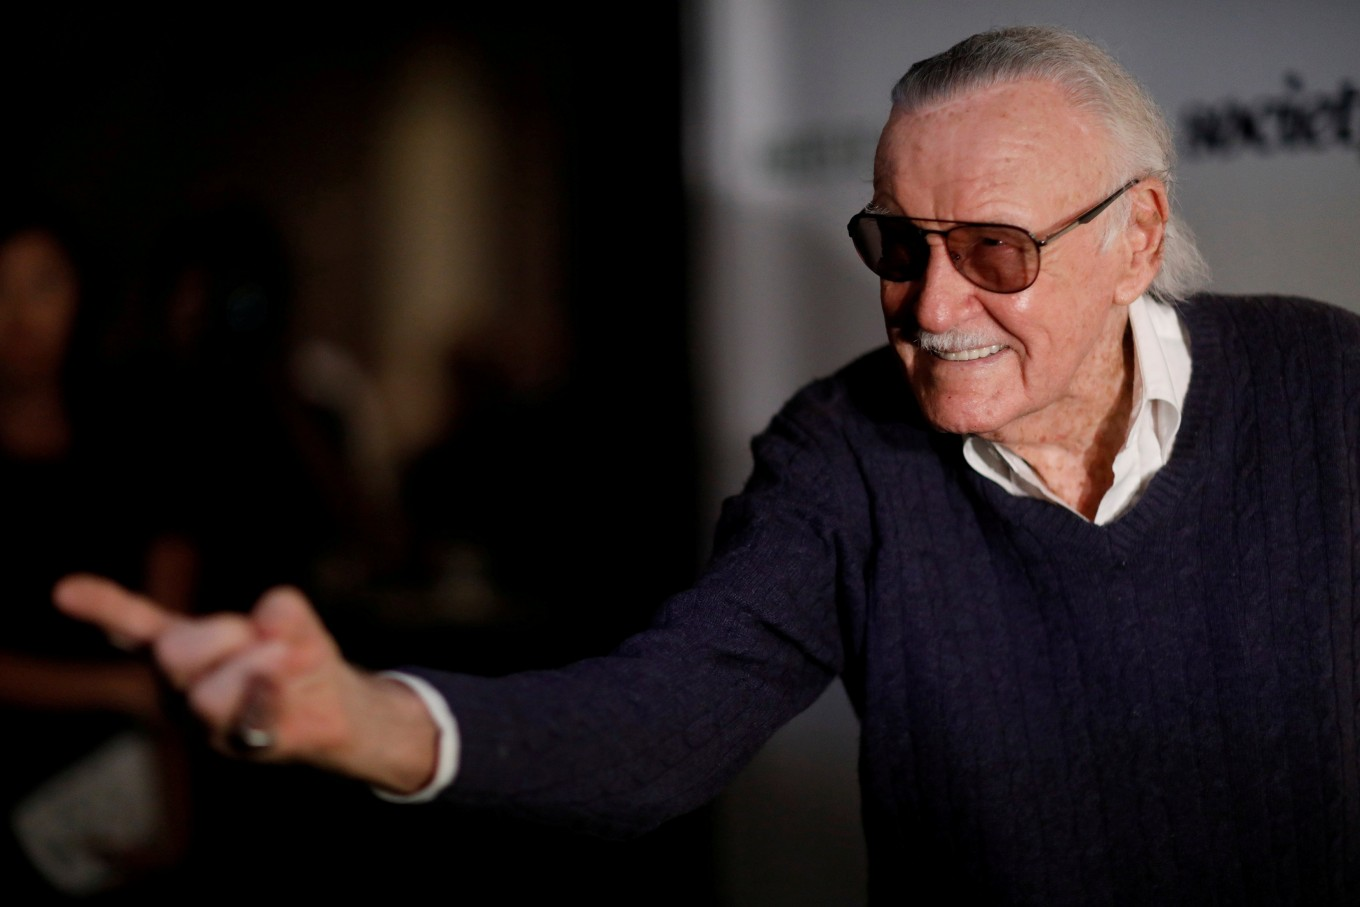 Stan Lee dies: 8 things you might not know about the Marvel superheroes creator